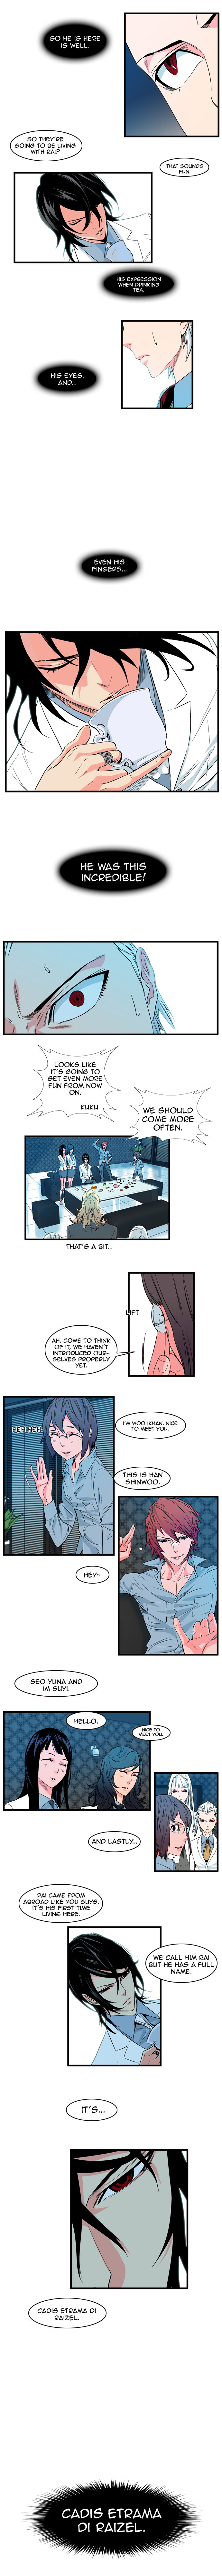 Noblesse 100 Page 2